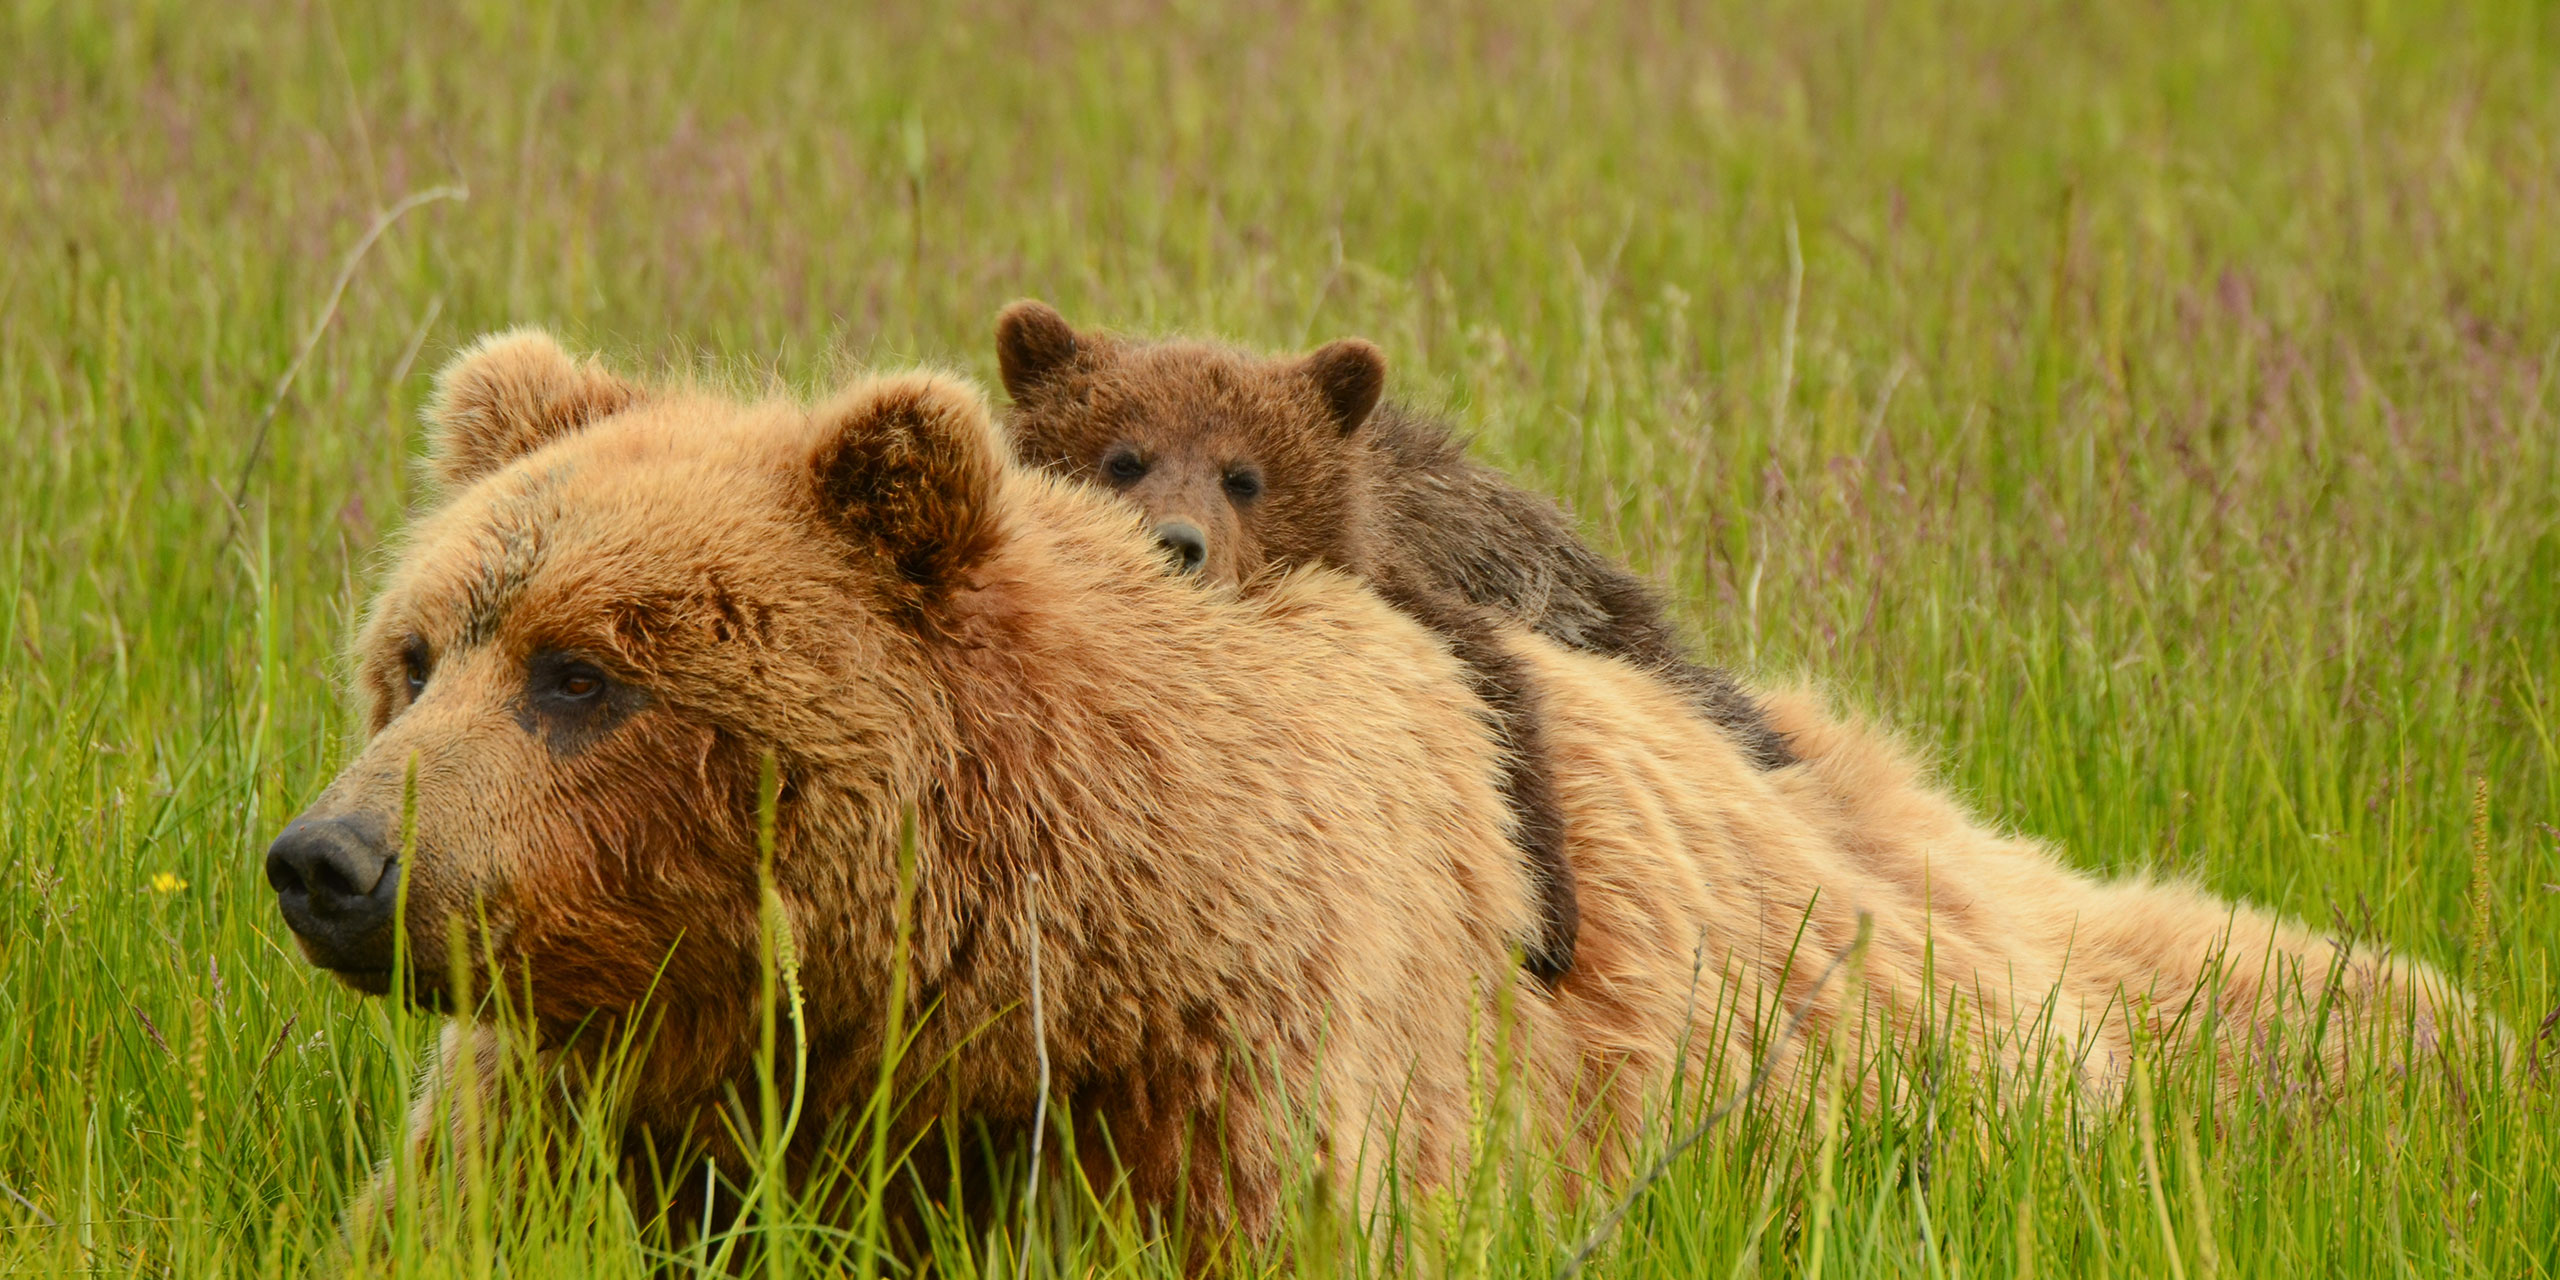 Bear and Her Cub in Alaska; Courtesy of David Rasmus/Shutterstock.com